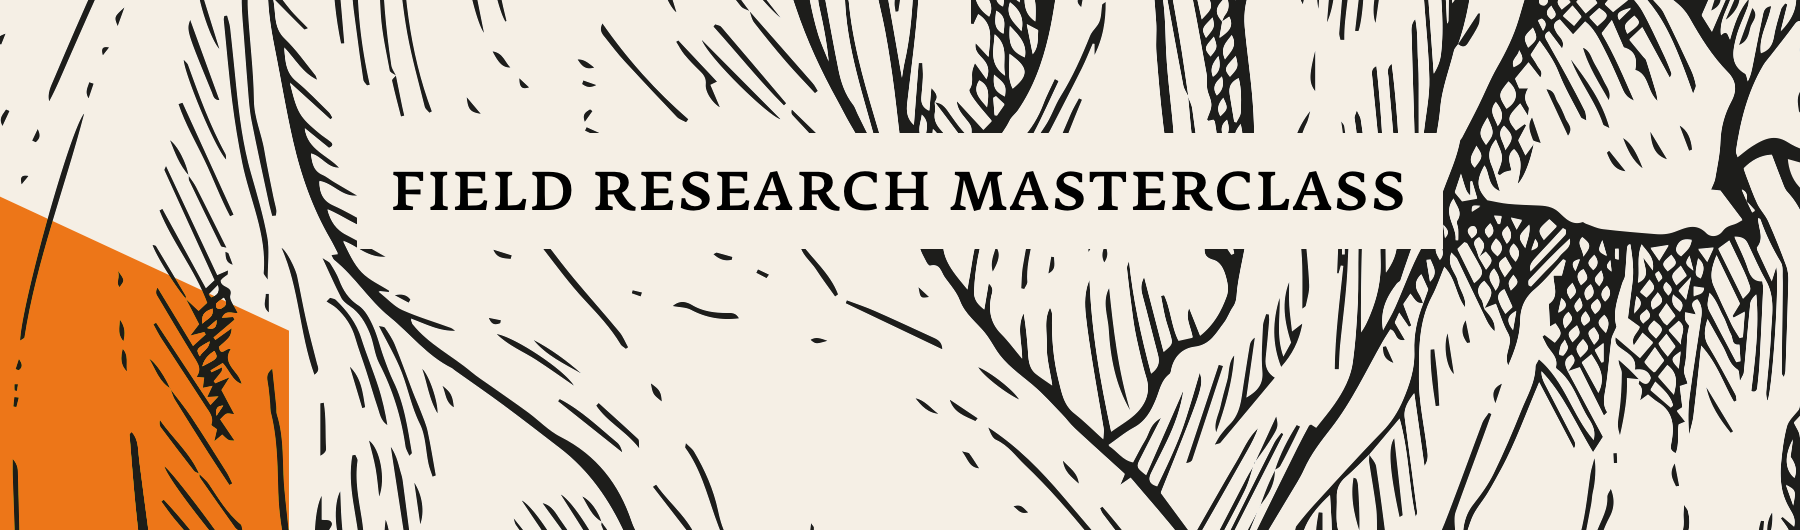 May 15, Field Research Masterclass, Paris